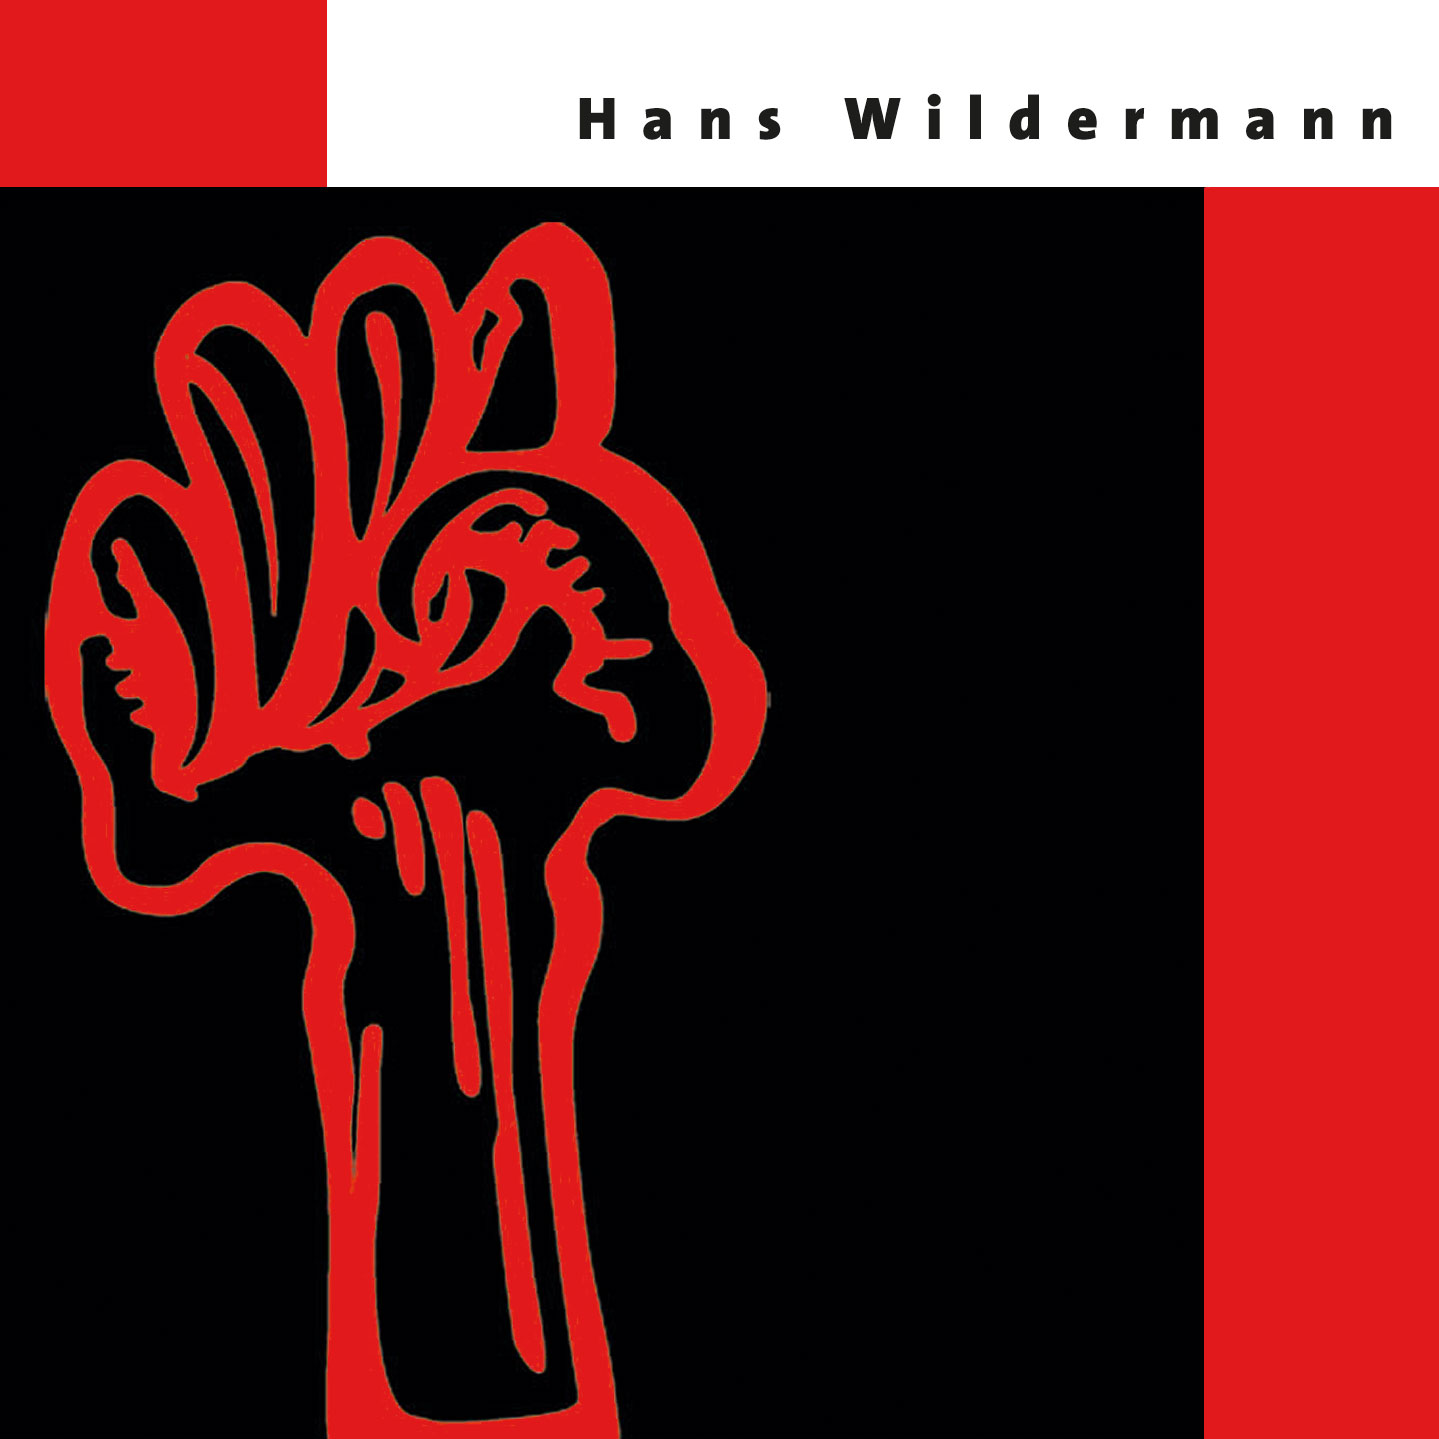 hans wildermann krueger gallery